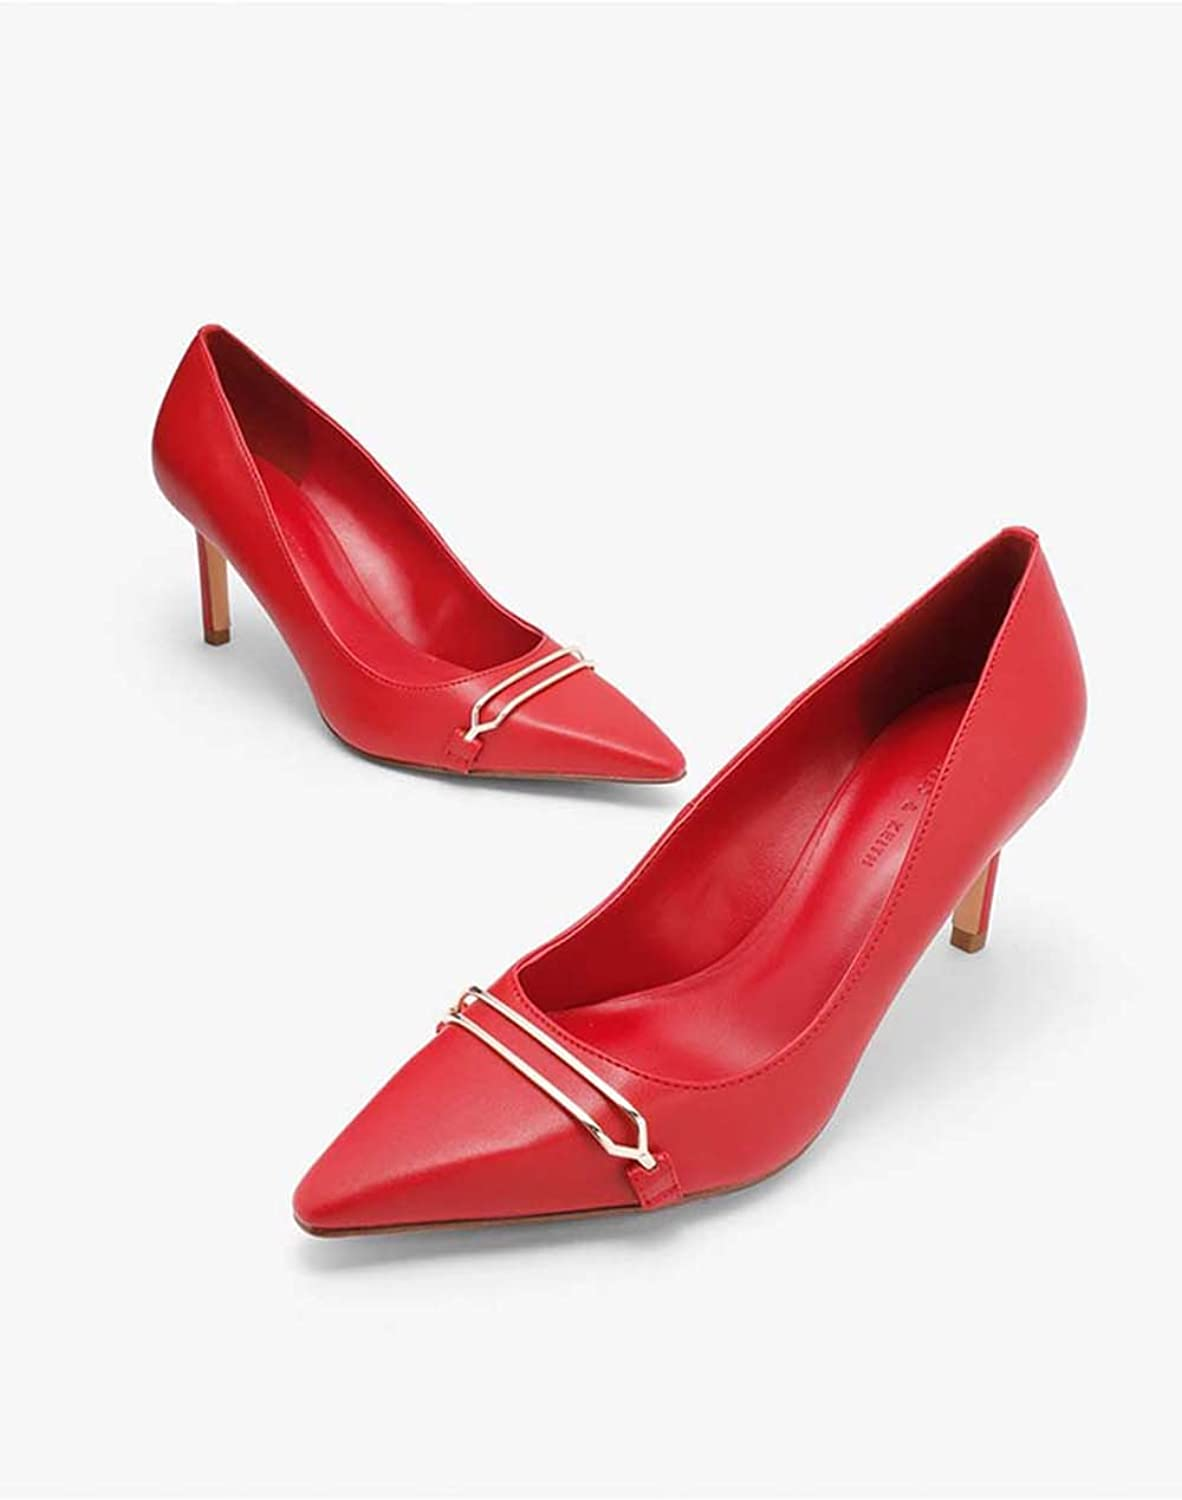 Slim and Professional Women Sandals, Single shoes, Pointed shoes, PU Leather, High Heels,Red,36